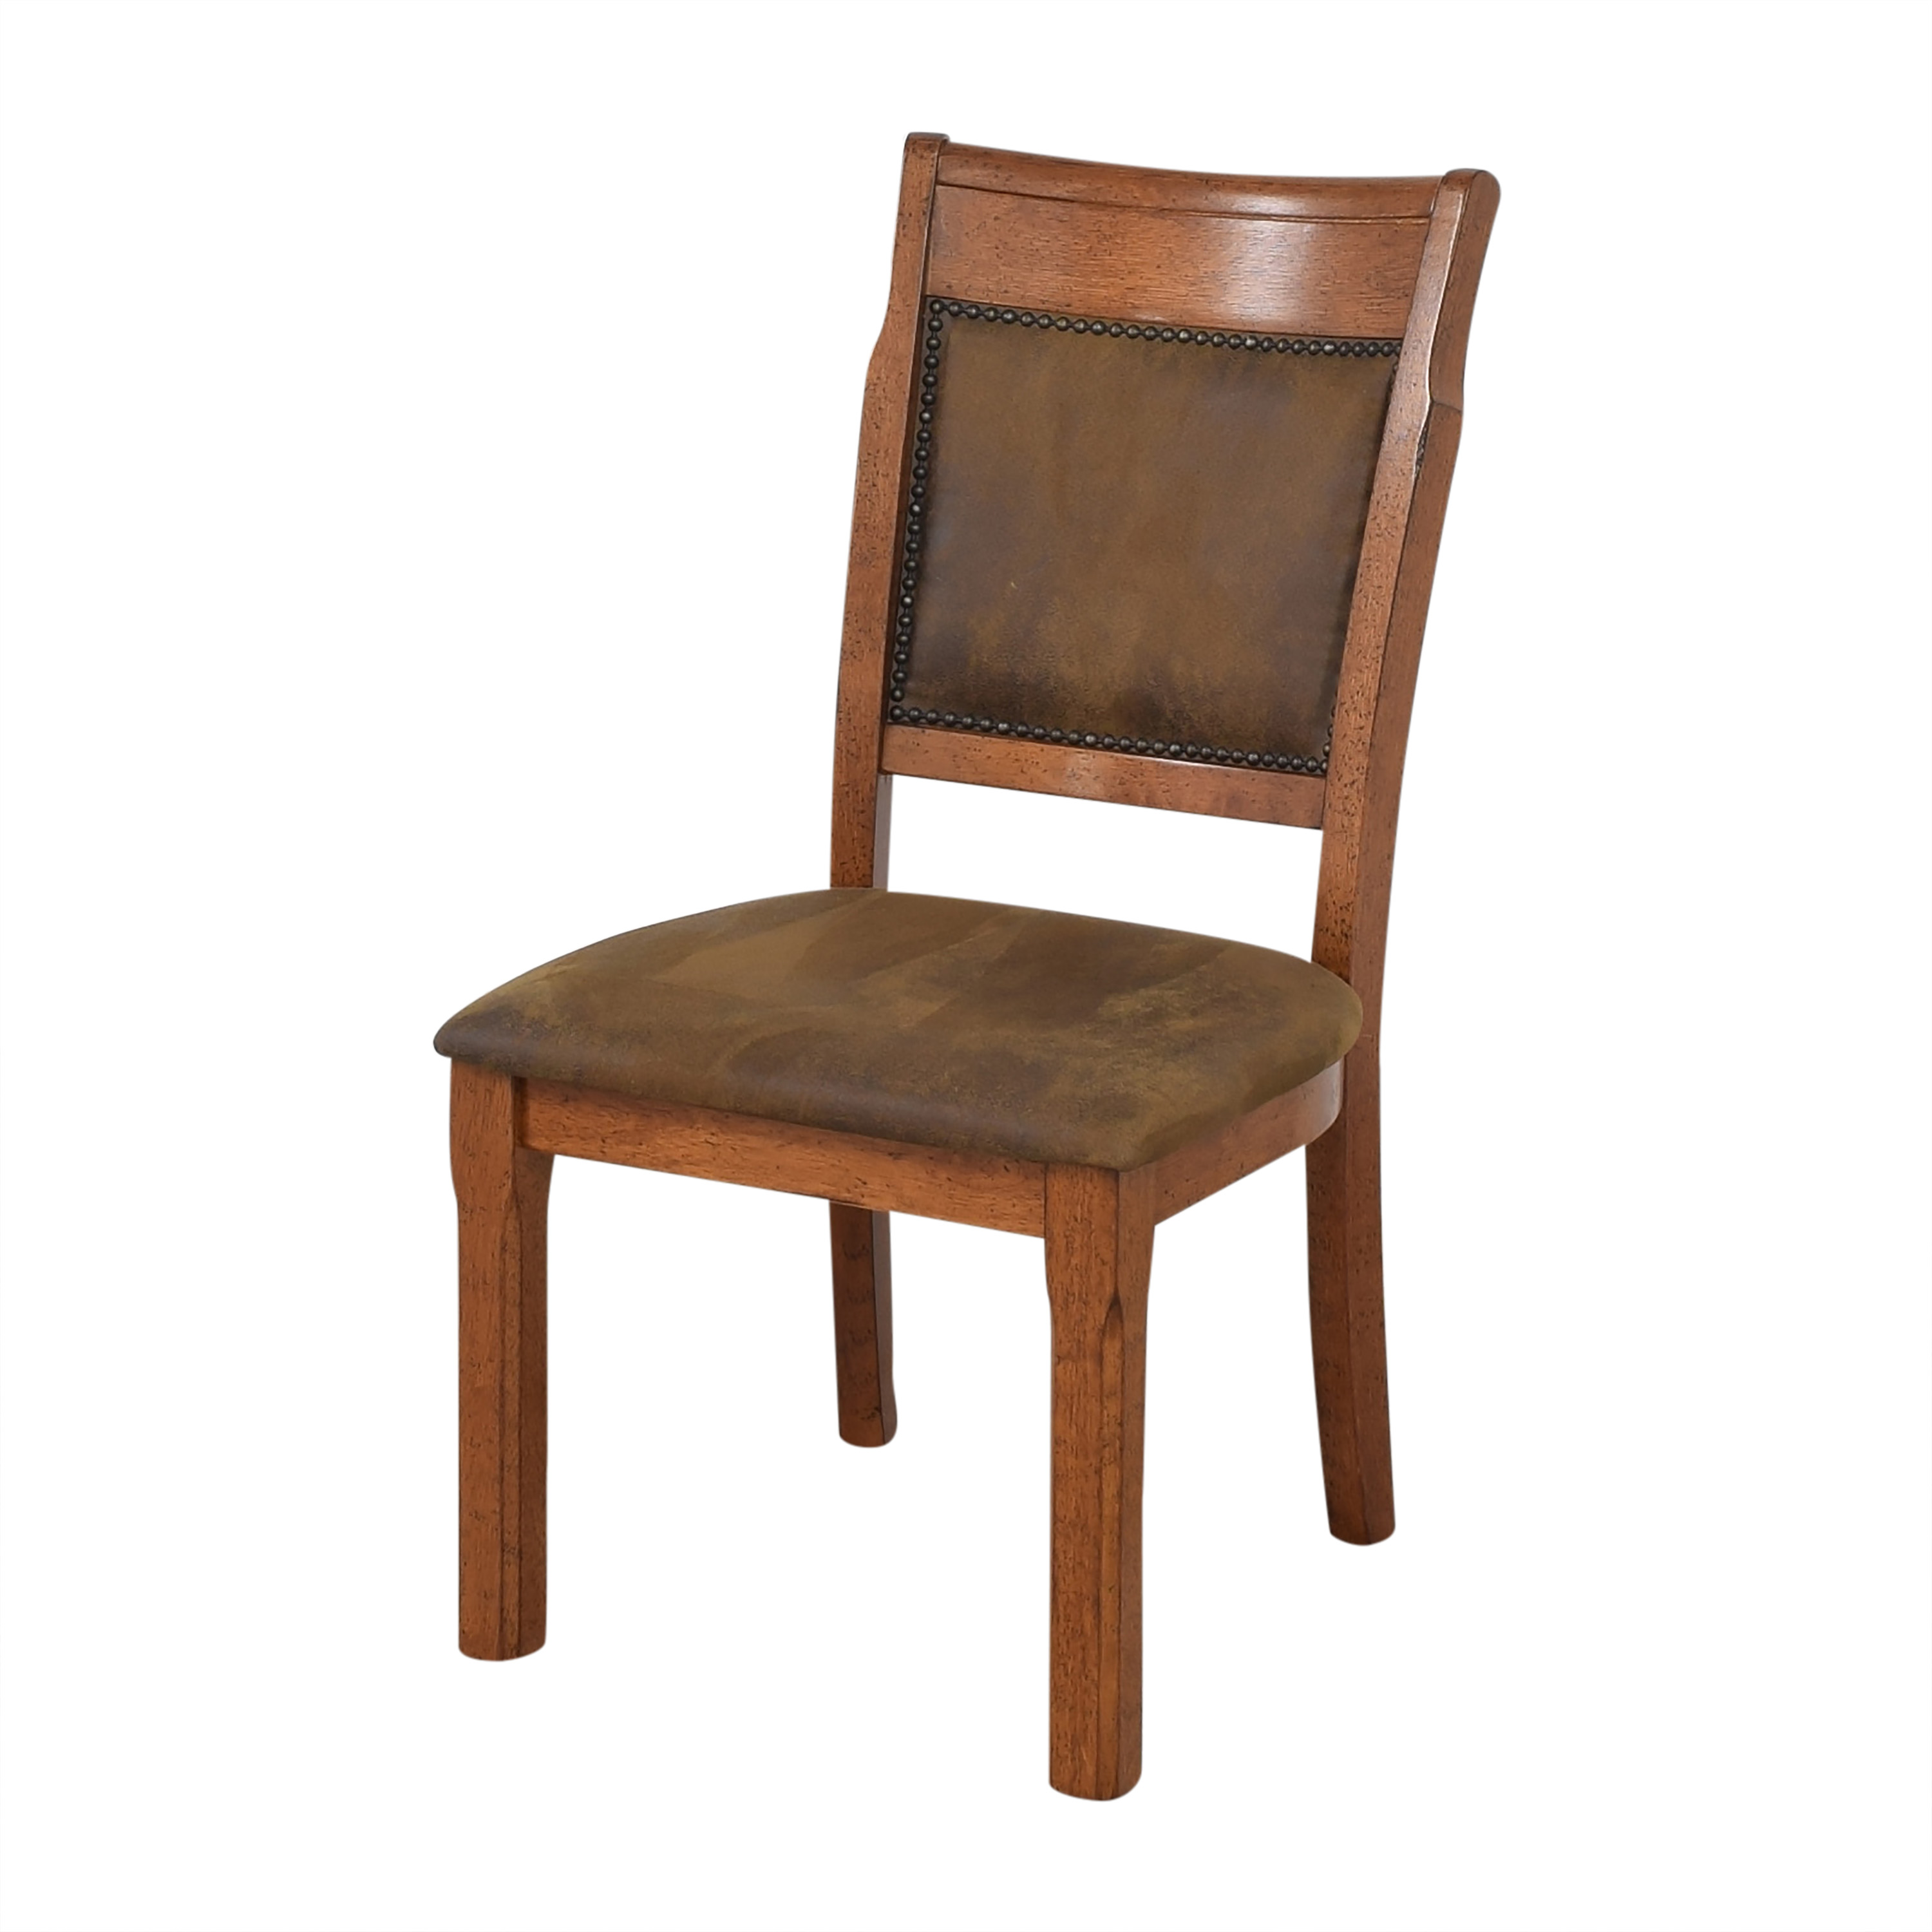 Raymour & Flanigan Soleste Dining Chairs sale